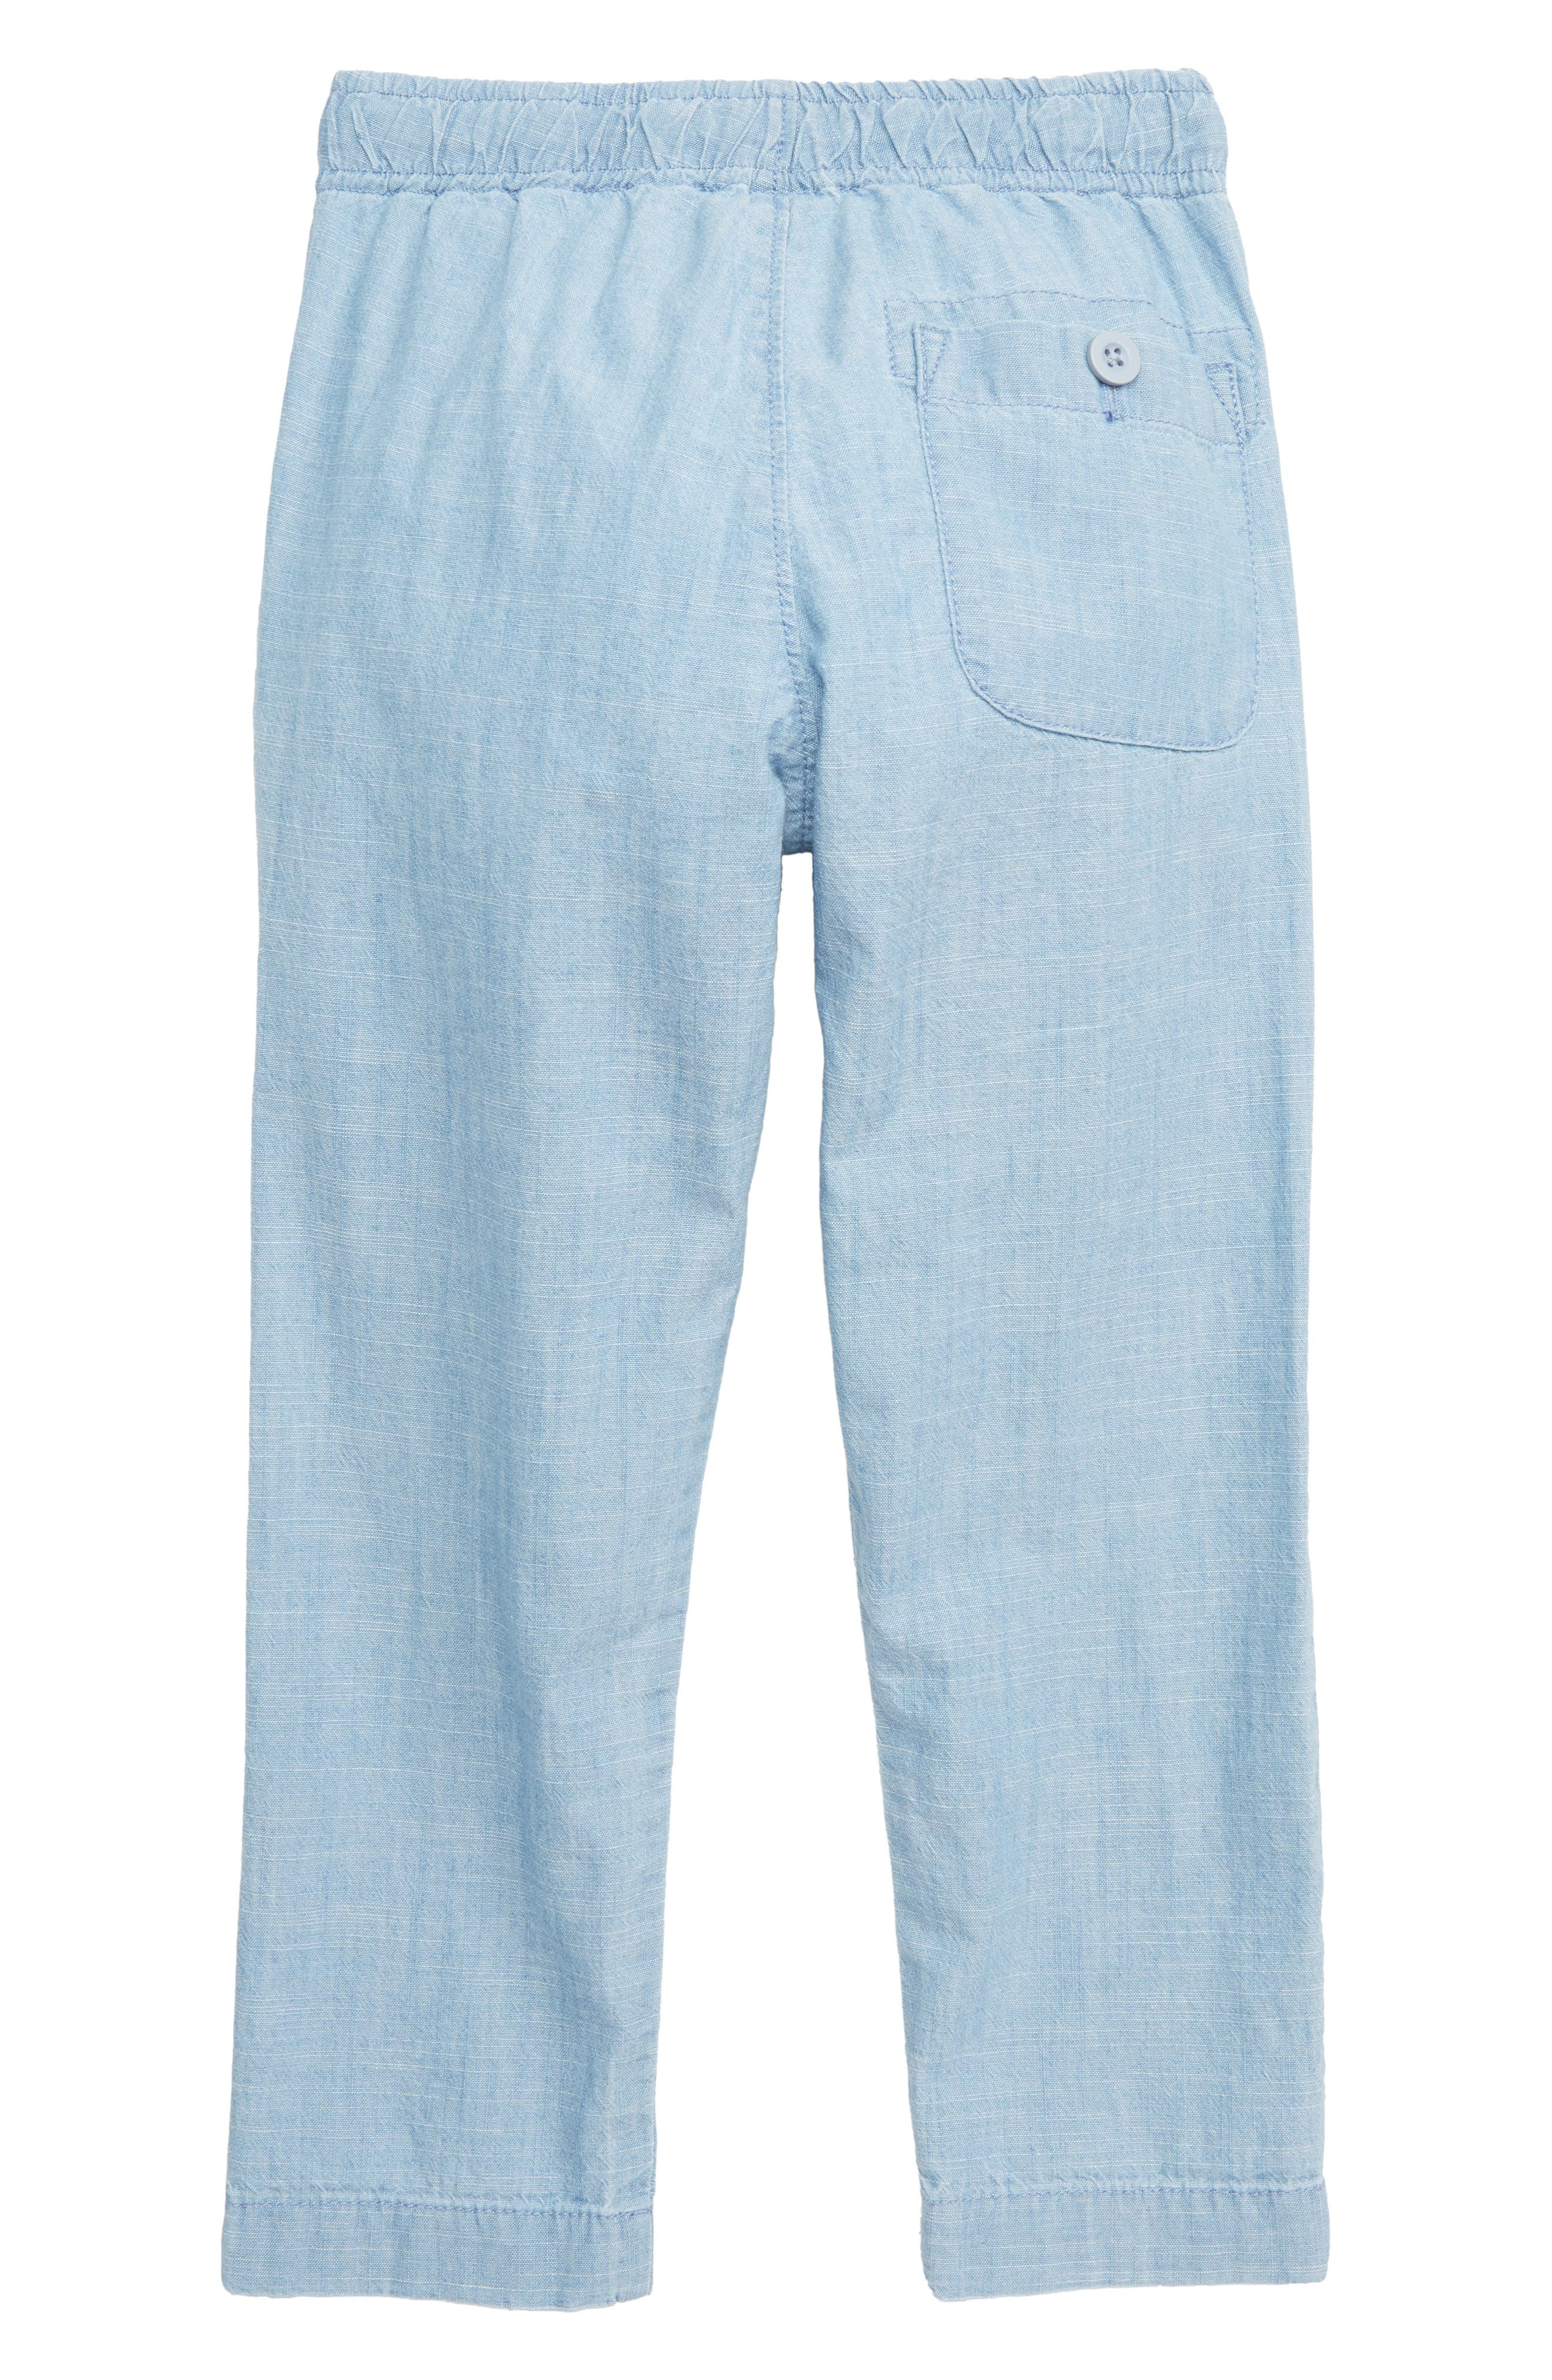 CREWCUTS BY J.CREW,                             Pull-On Chambray Pants with Reinforced Knees,                             Alternate thumbnail 2, color,                             MEDIUM CHAMBRAY WASH